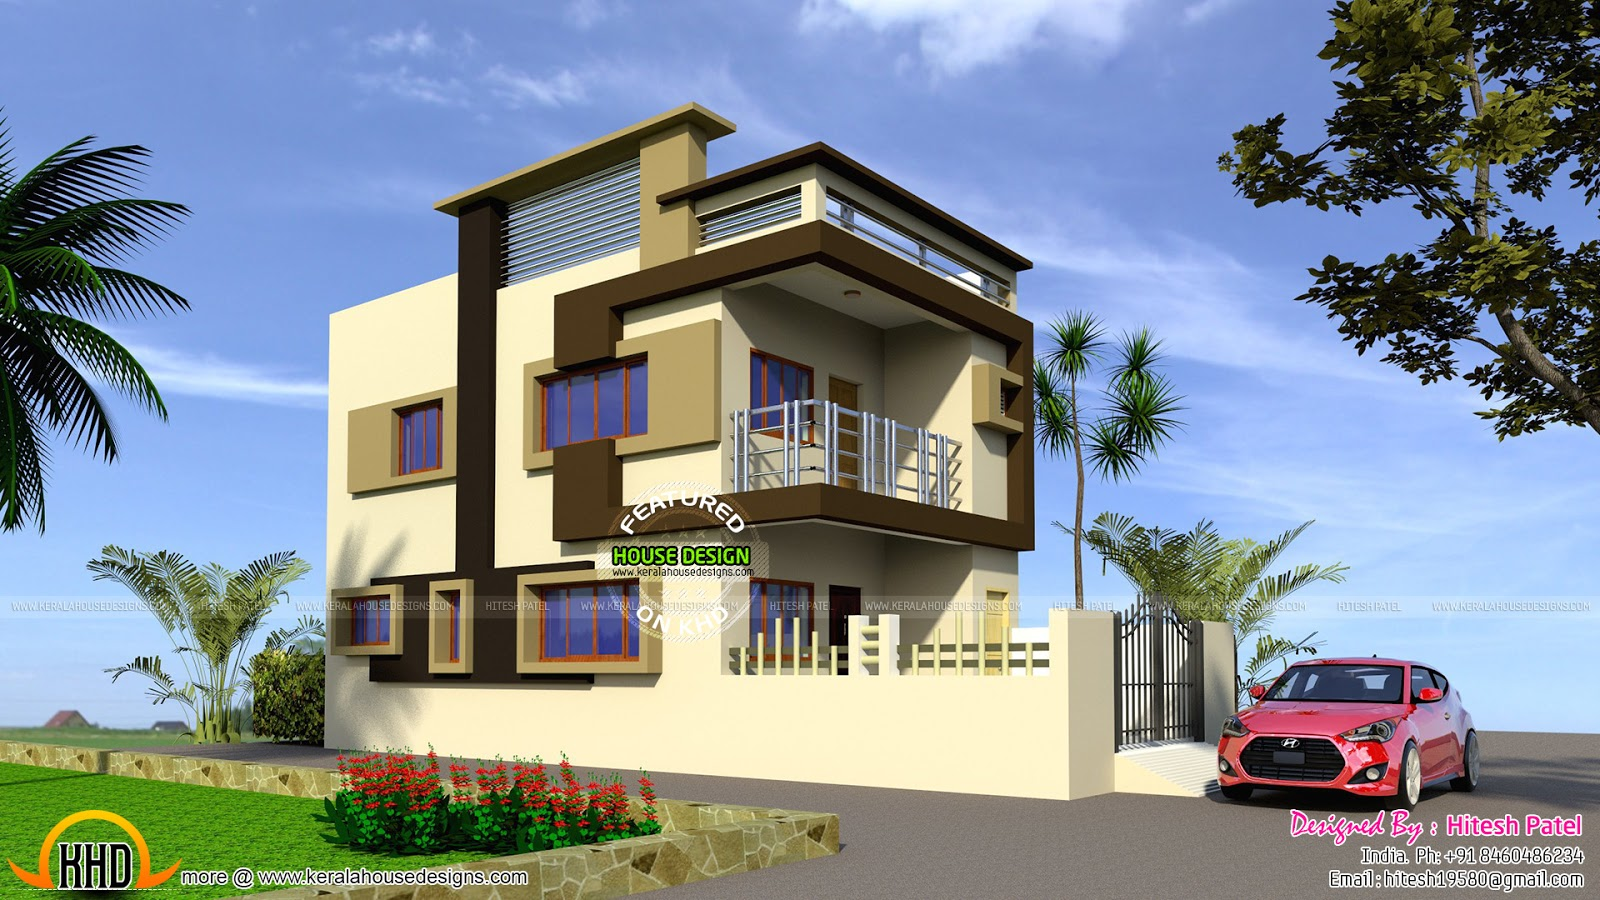 Indian model flat roof house kerala home design and for Small house design plans in india image